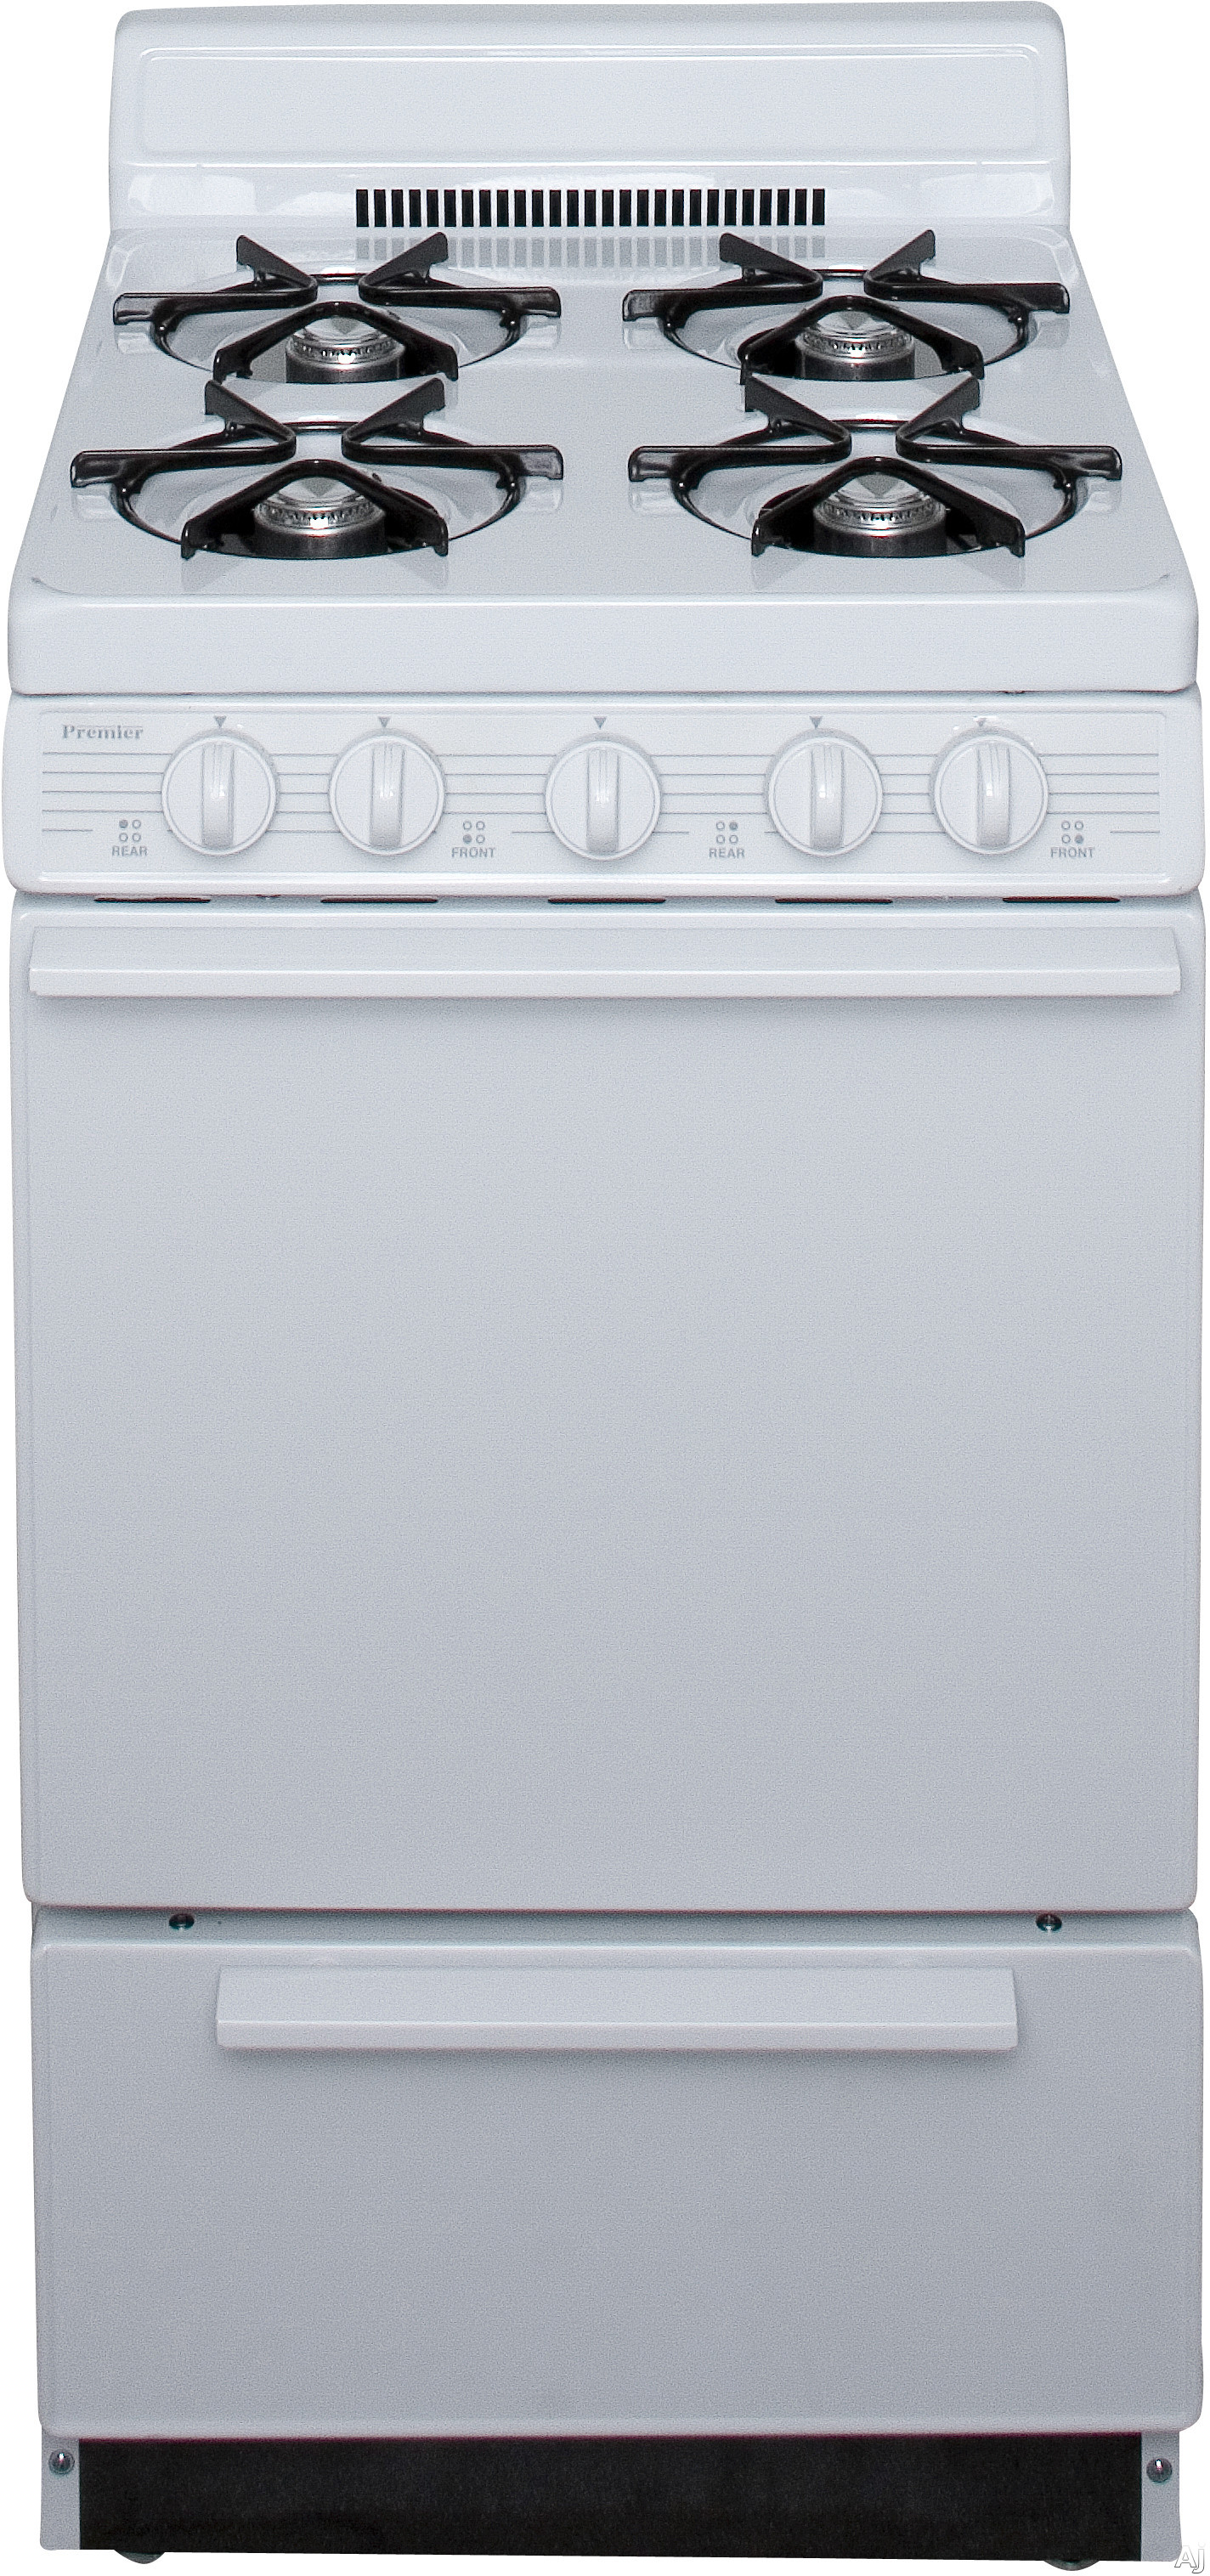 Premier BAK100OP 20 Inch Freestanding Gas Range with 4 Open Burners Battery Spark Ignition 17 000 BTU Burner and 4 Inch Porcelain Backguard White